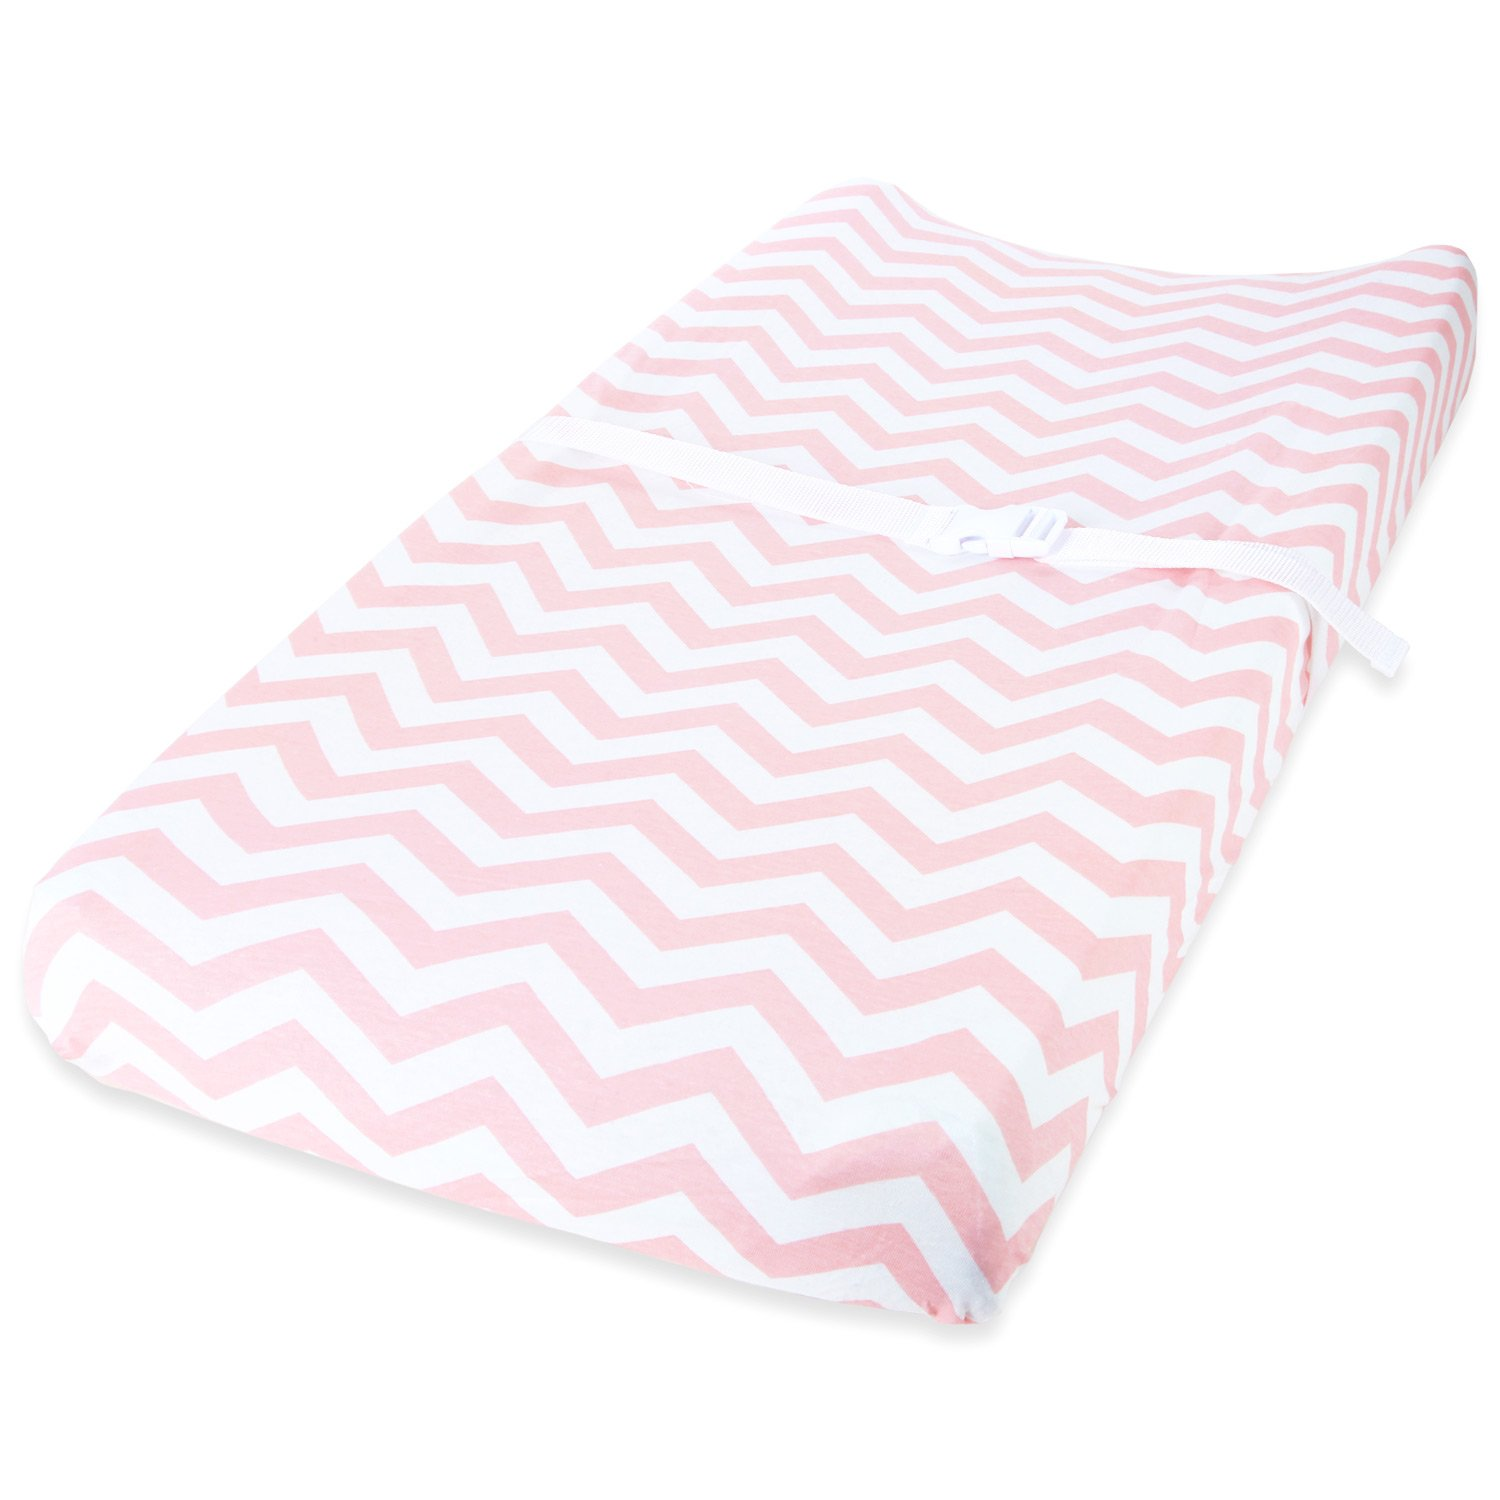 Cuddly Cubs Diaper Changing Table Pad Cover Set For Baby Girl | Soft & Breathable 100% Jersey Cotton | Adorable Unisex Patterns & Fitted Elastic Design | Cute Nursery & Cradle Bedding Sheets 2-Pack by Cuddly Cubs (Image #2)